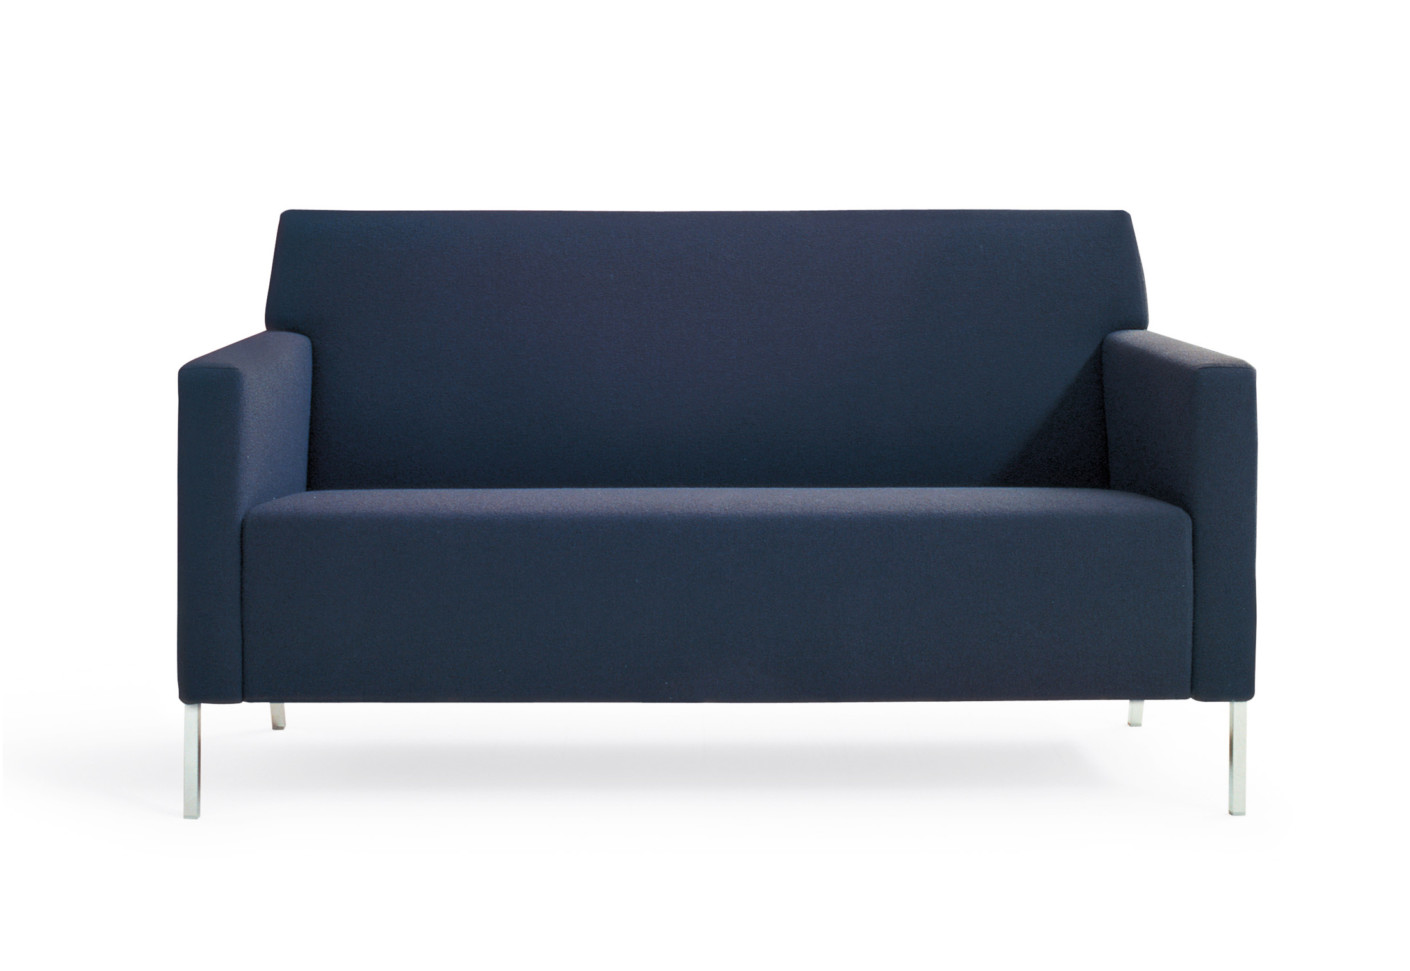 Steel Sofa By Moroso Stylepark